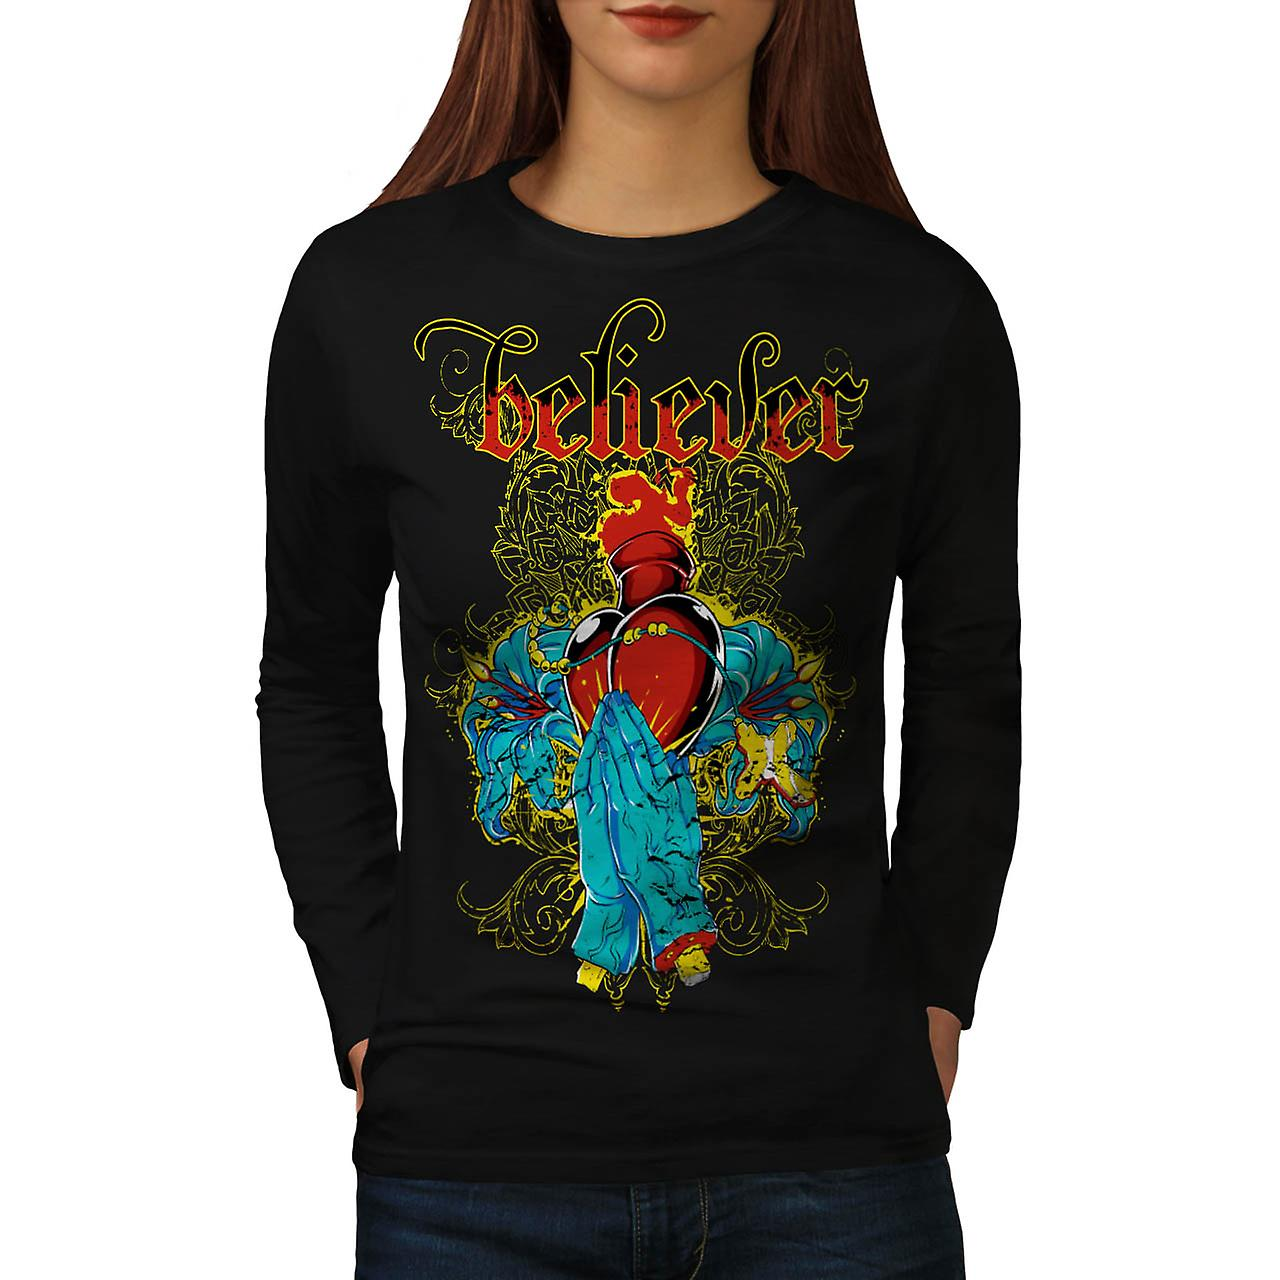 Believer Vintage Fashion Women Black Long Sleeve T-shirt | Wellcoda